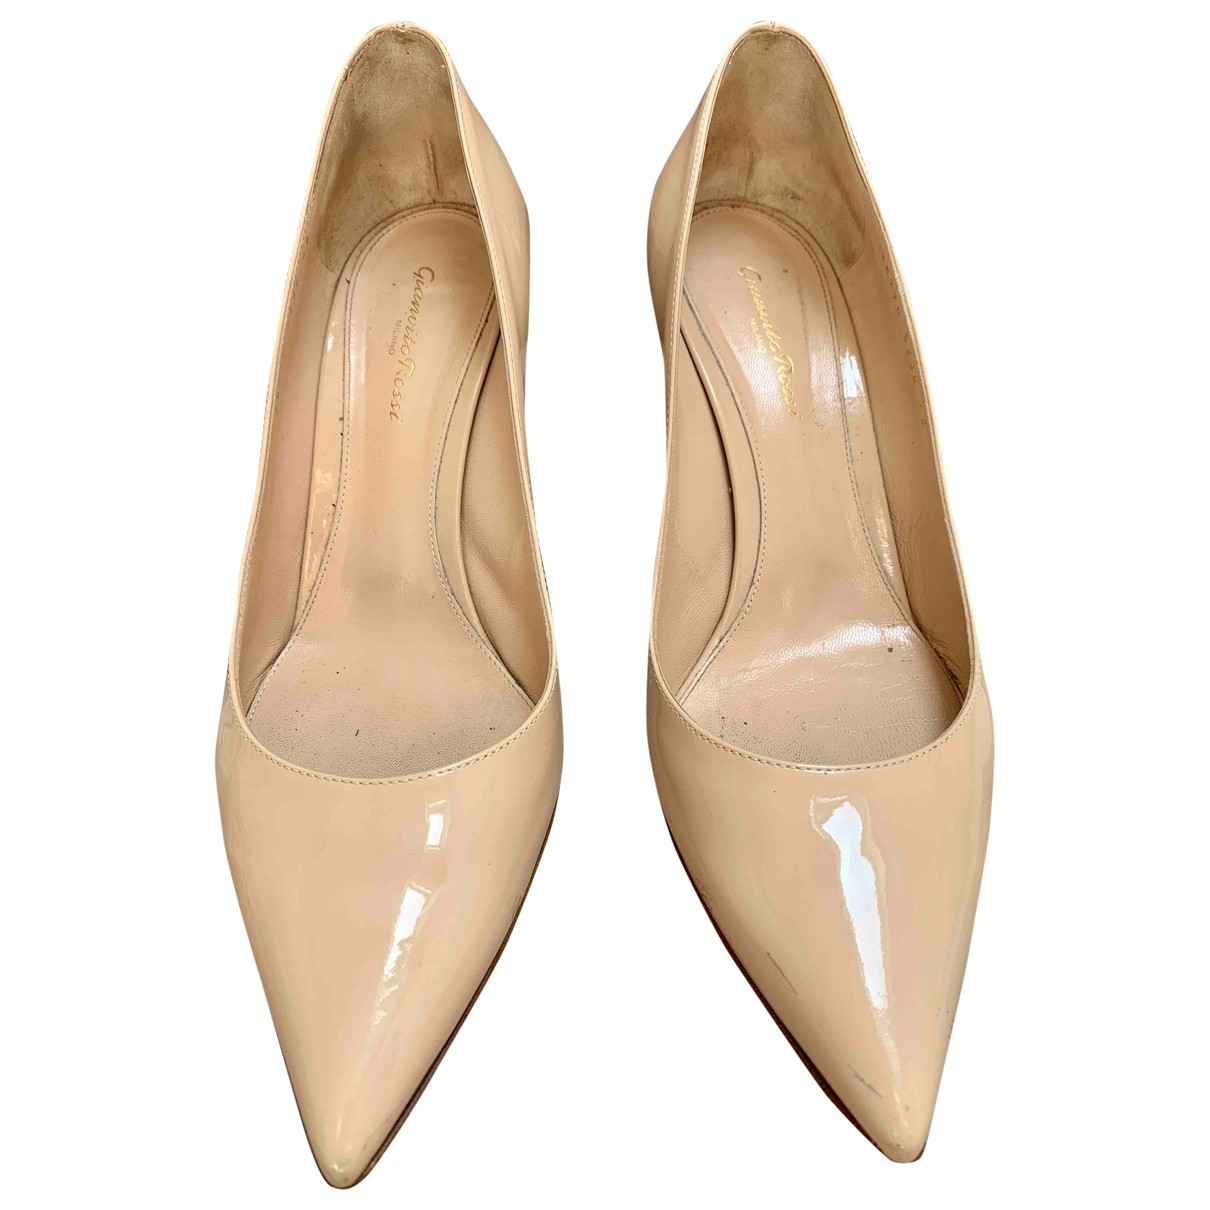 Gianvito Rossi Gianvito Beige Patent leather Heels for Women 42 EU